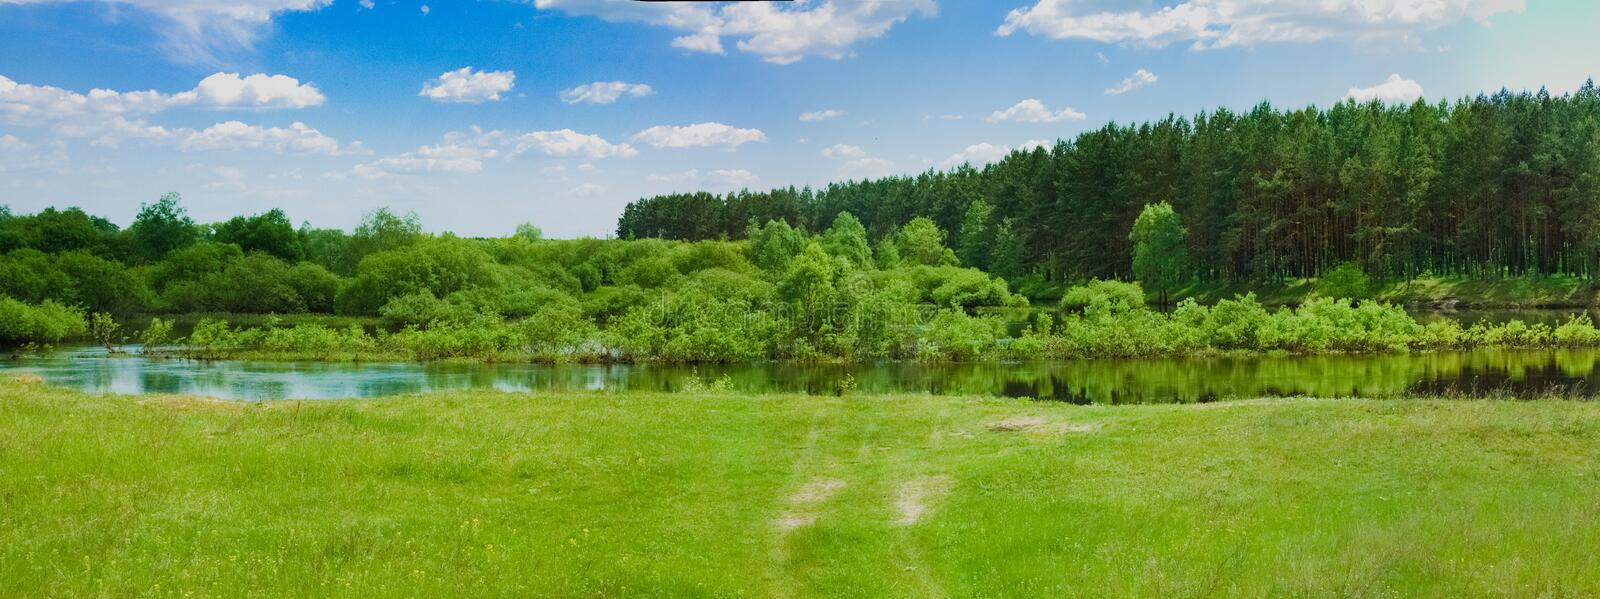 Wide Panorama Of A River And The Forest royalty free stock image